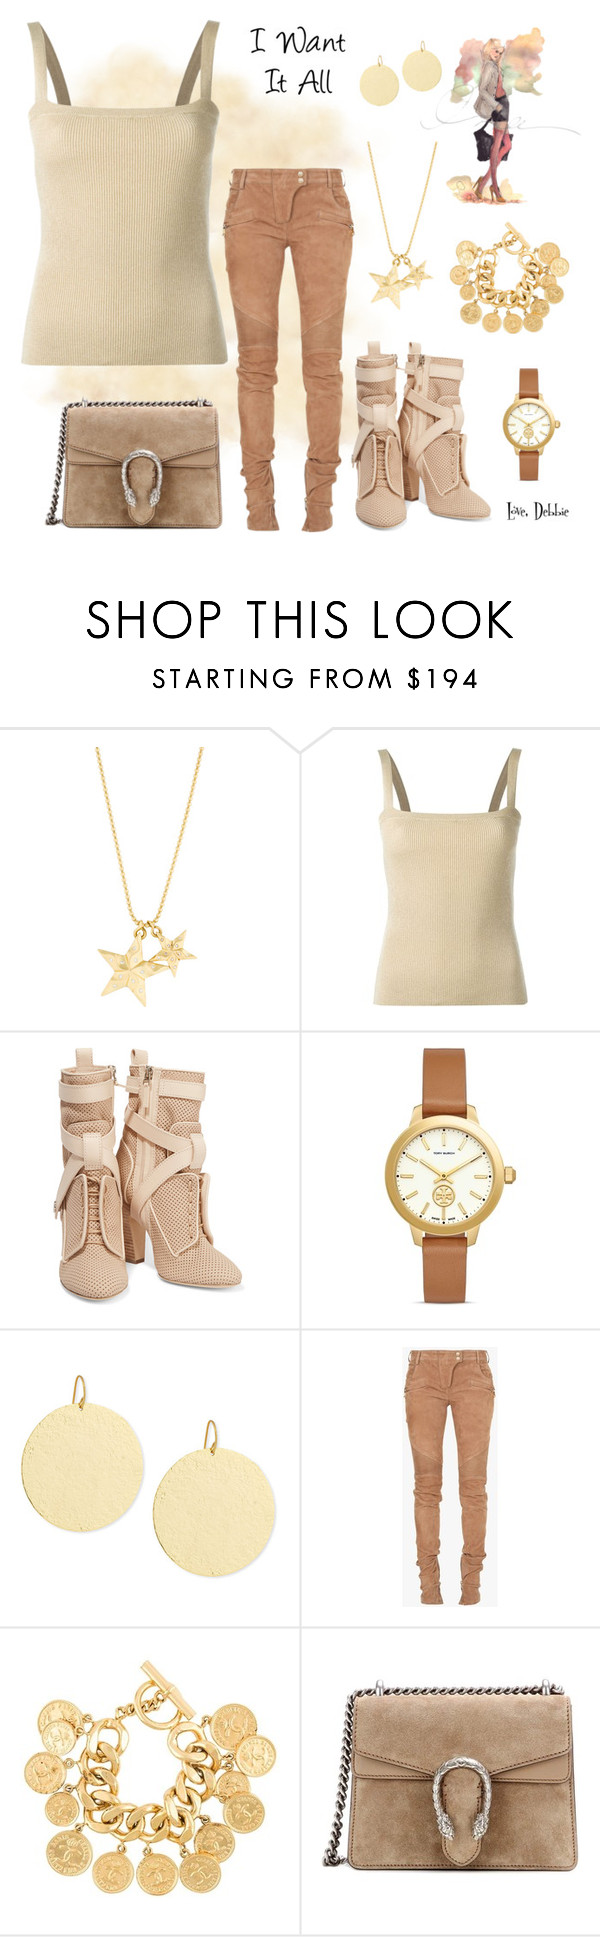 """""""I Want It All"""" by debbie-michailides ❤ liked on Polyvore featuring Dolce&Gabbana, Fendi, Tory Burch, Stephanie Kantis, Balmain, Chanel and Gucci"""